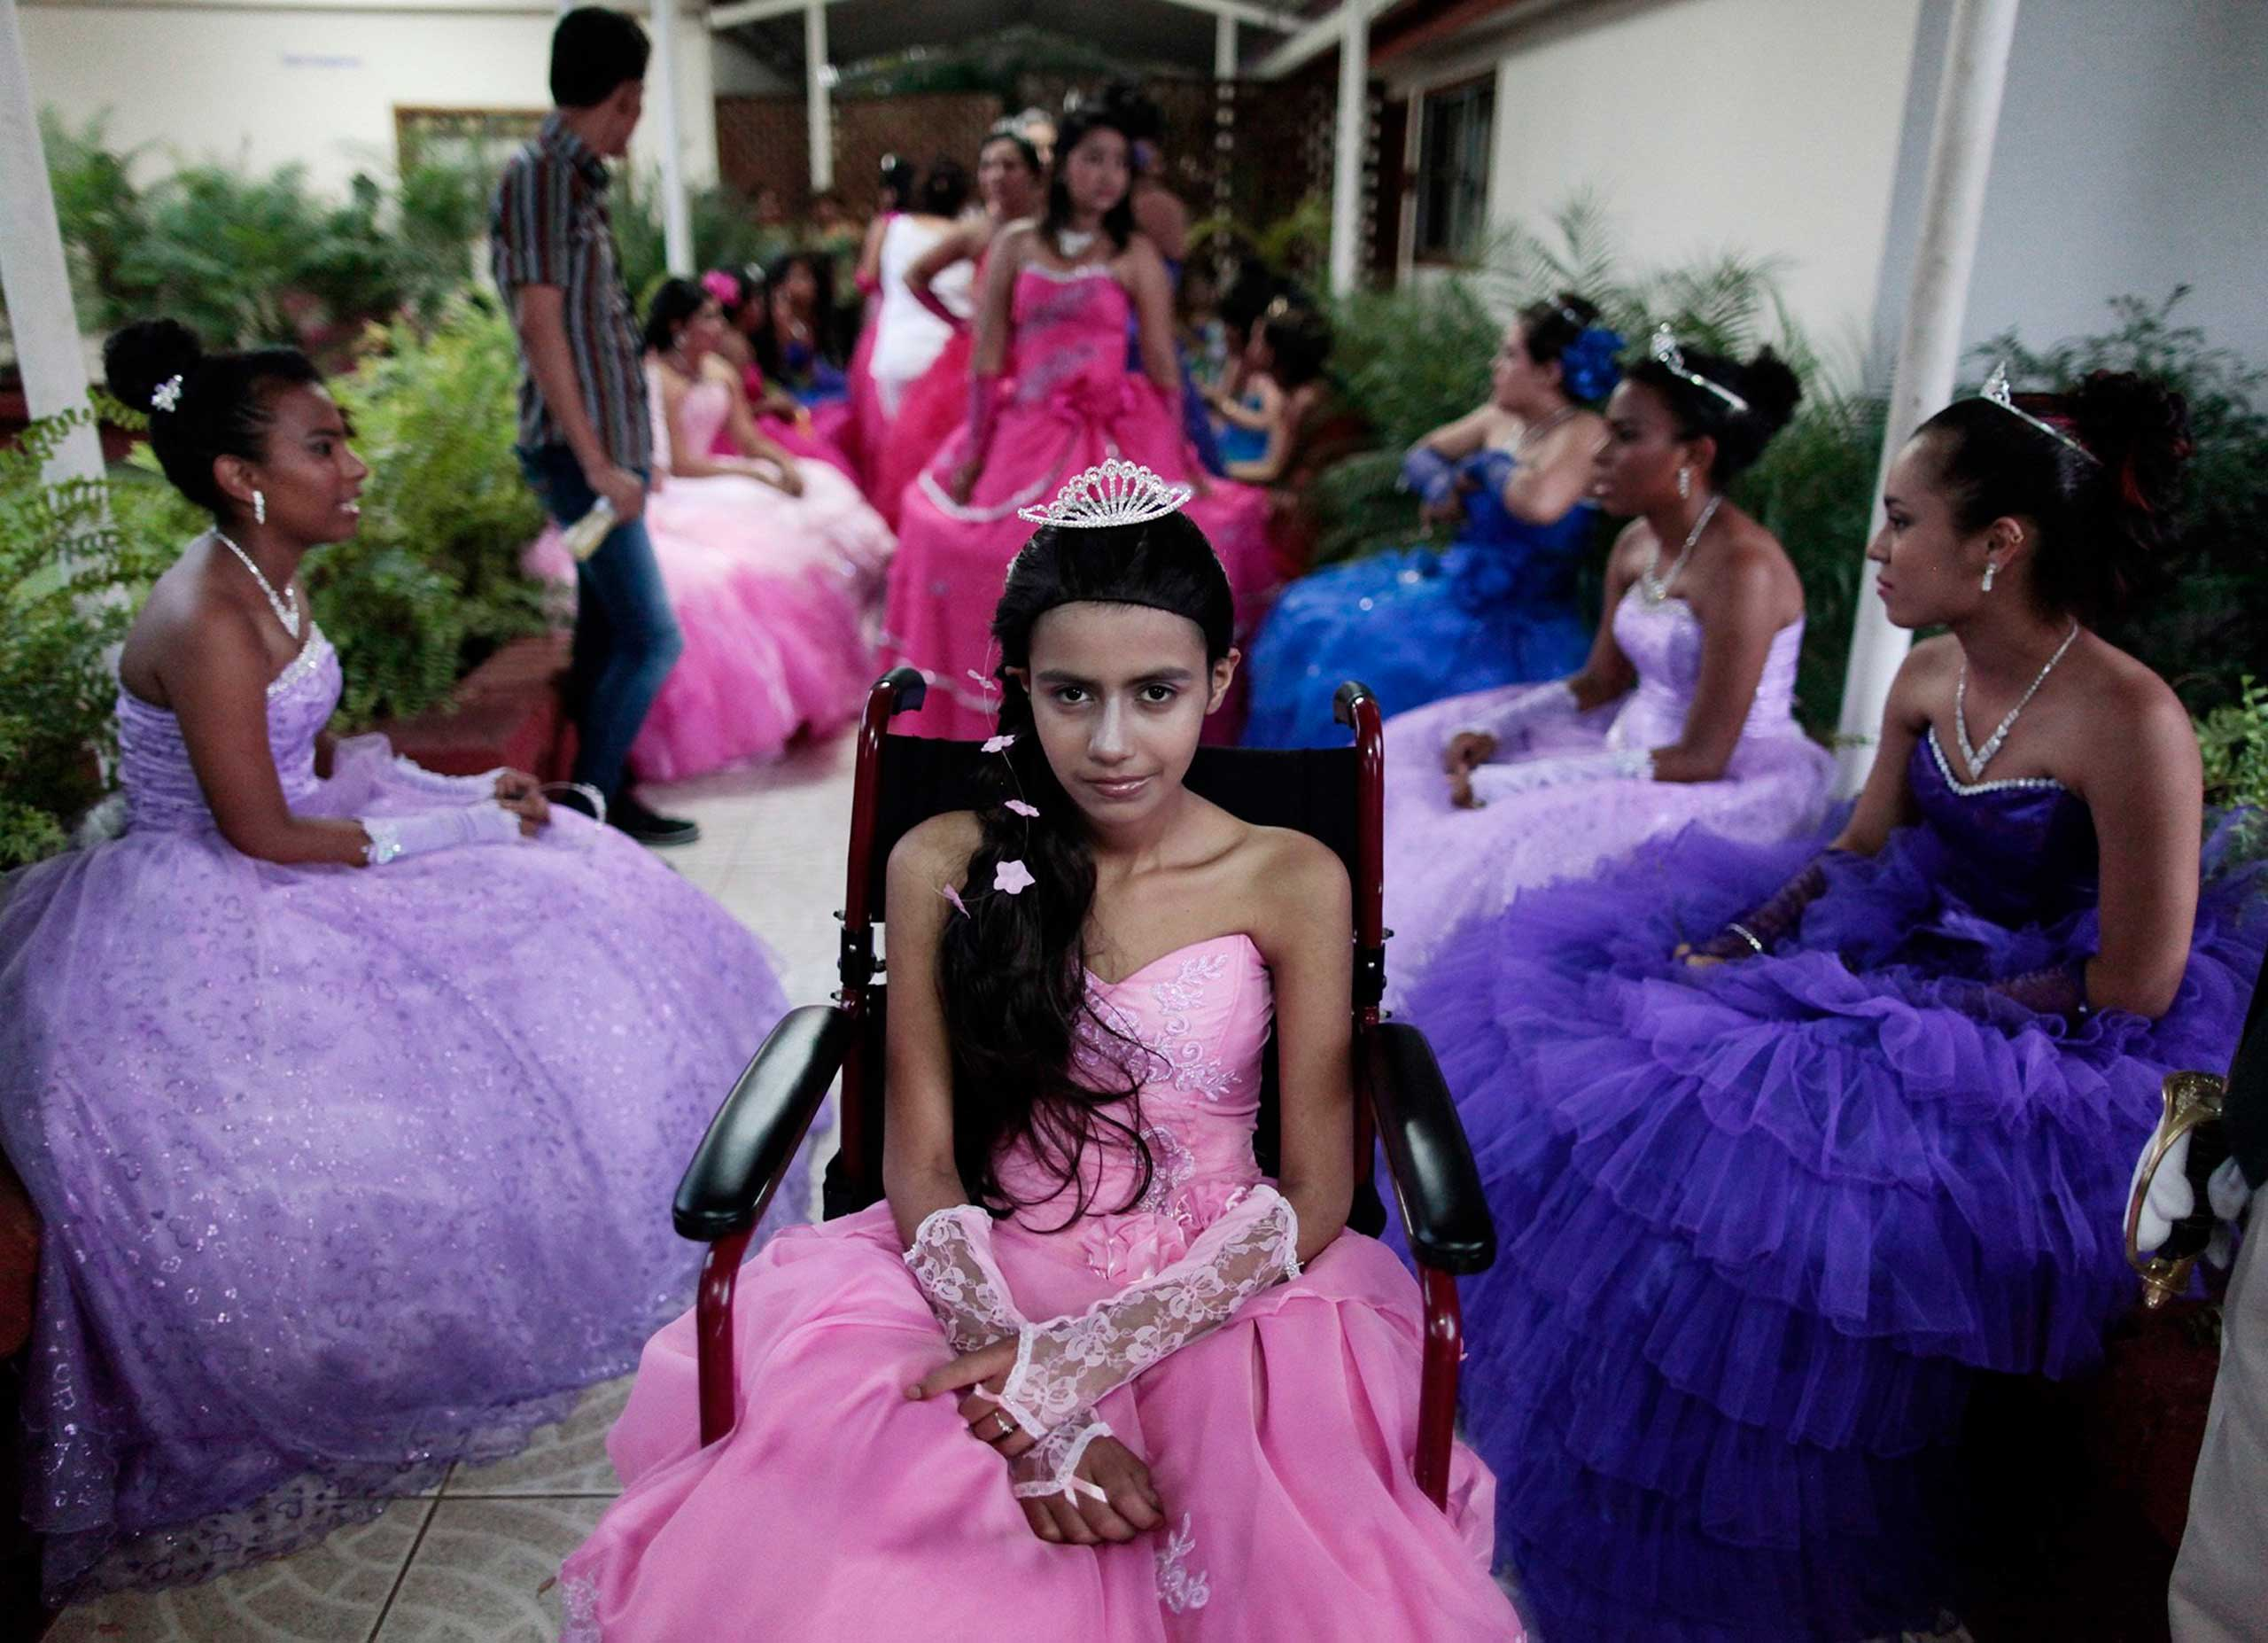 Sept. 20, 2014.A cancer patient poses for a photo during her  Quinceanera  (15th birthday) party among other celebrants at a hotel in Managua, Nicaragua.